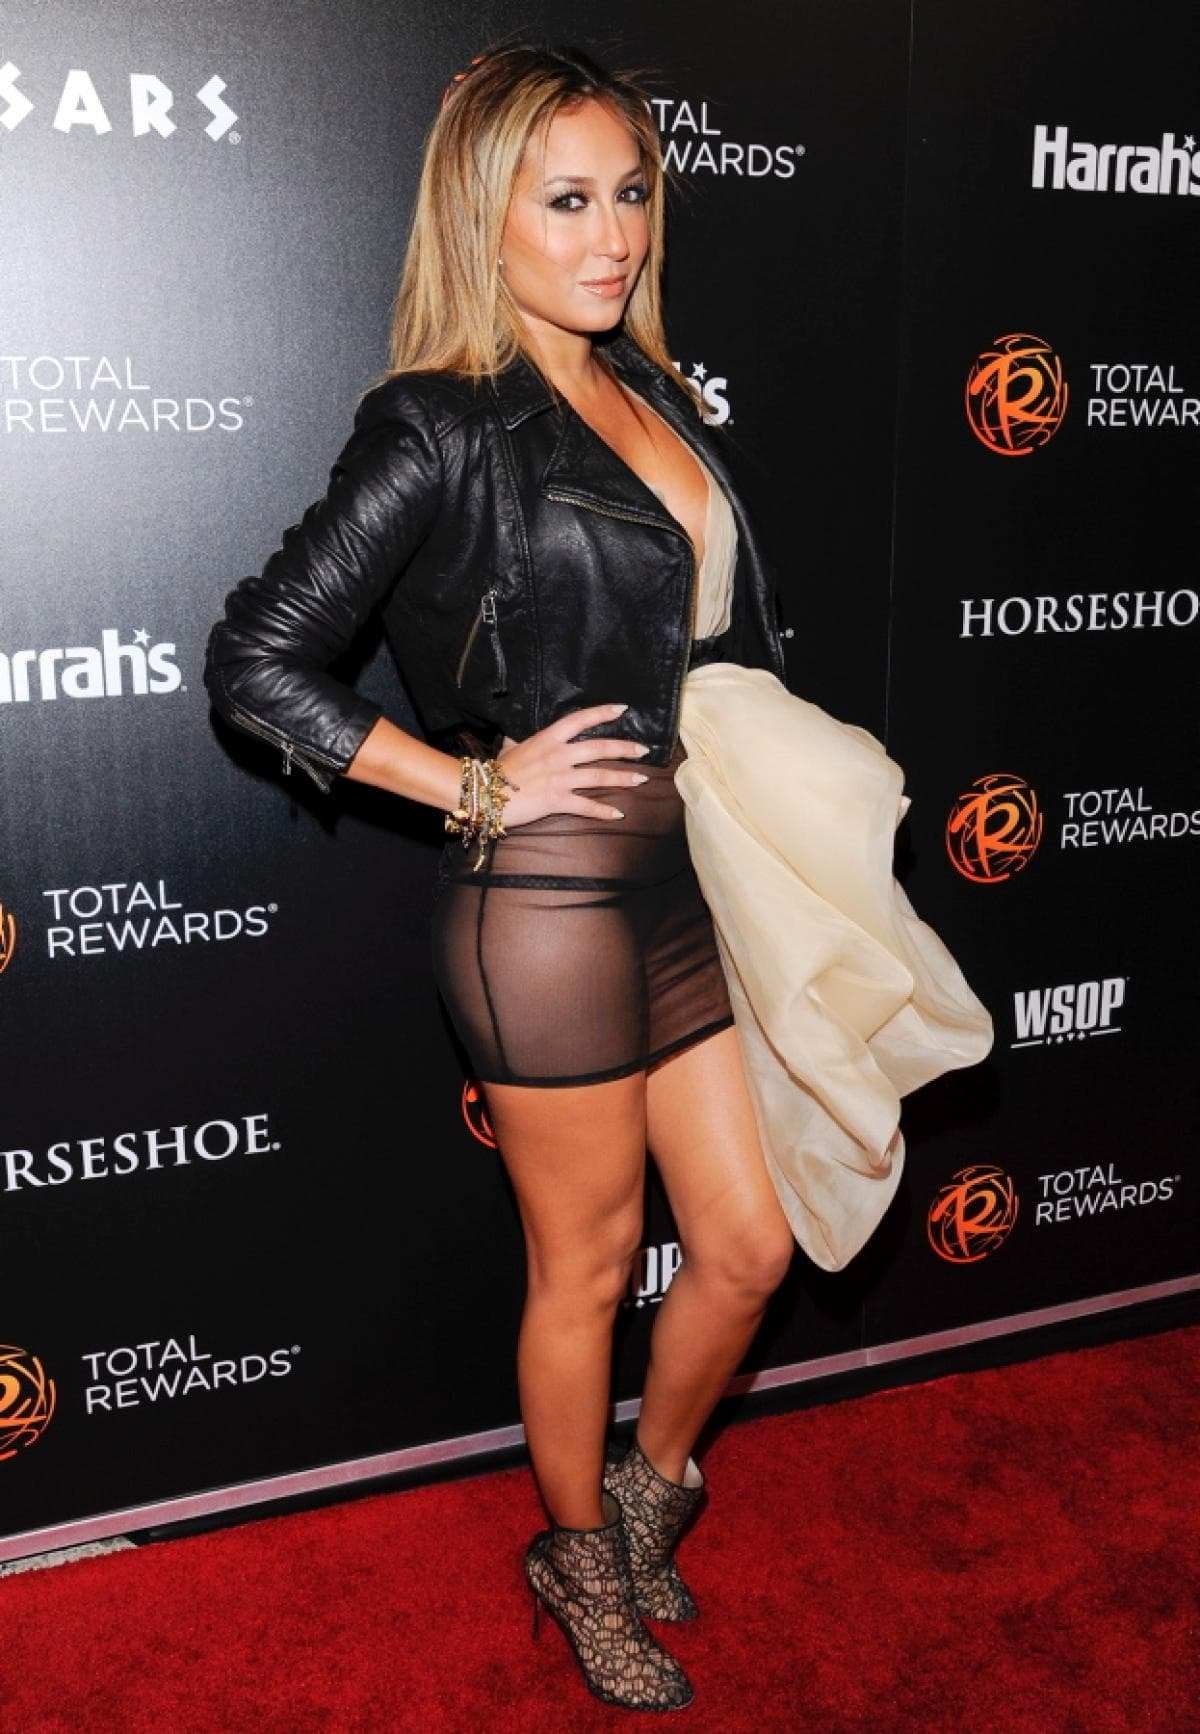 Adrienne Bailon HQ wallpapers